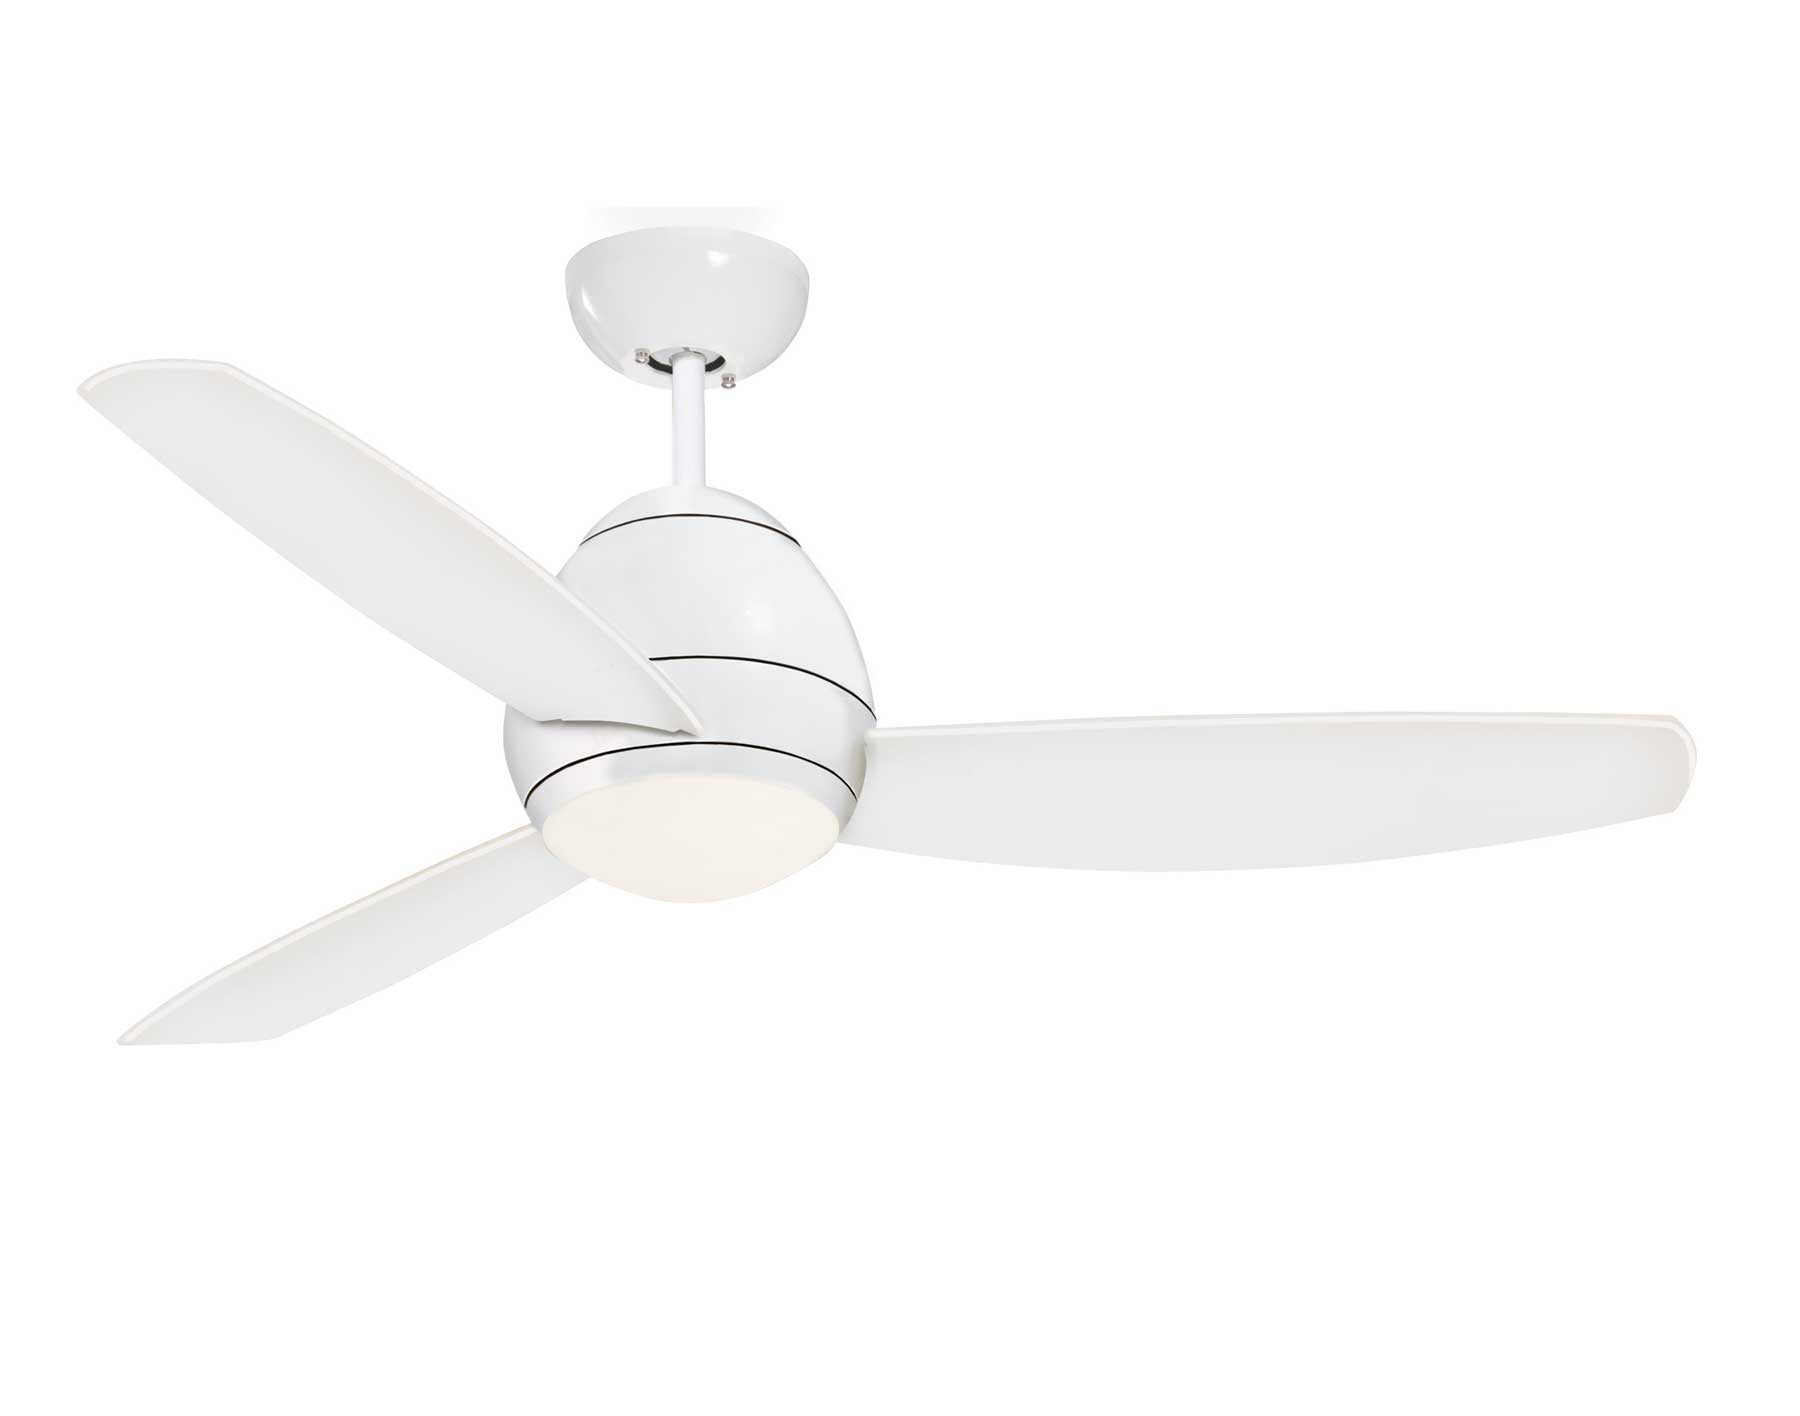 Appliance White Avruc Outdoor Ceiling Fan w Light